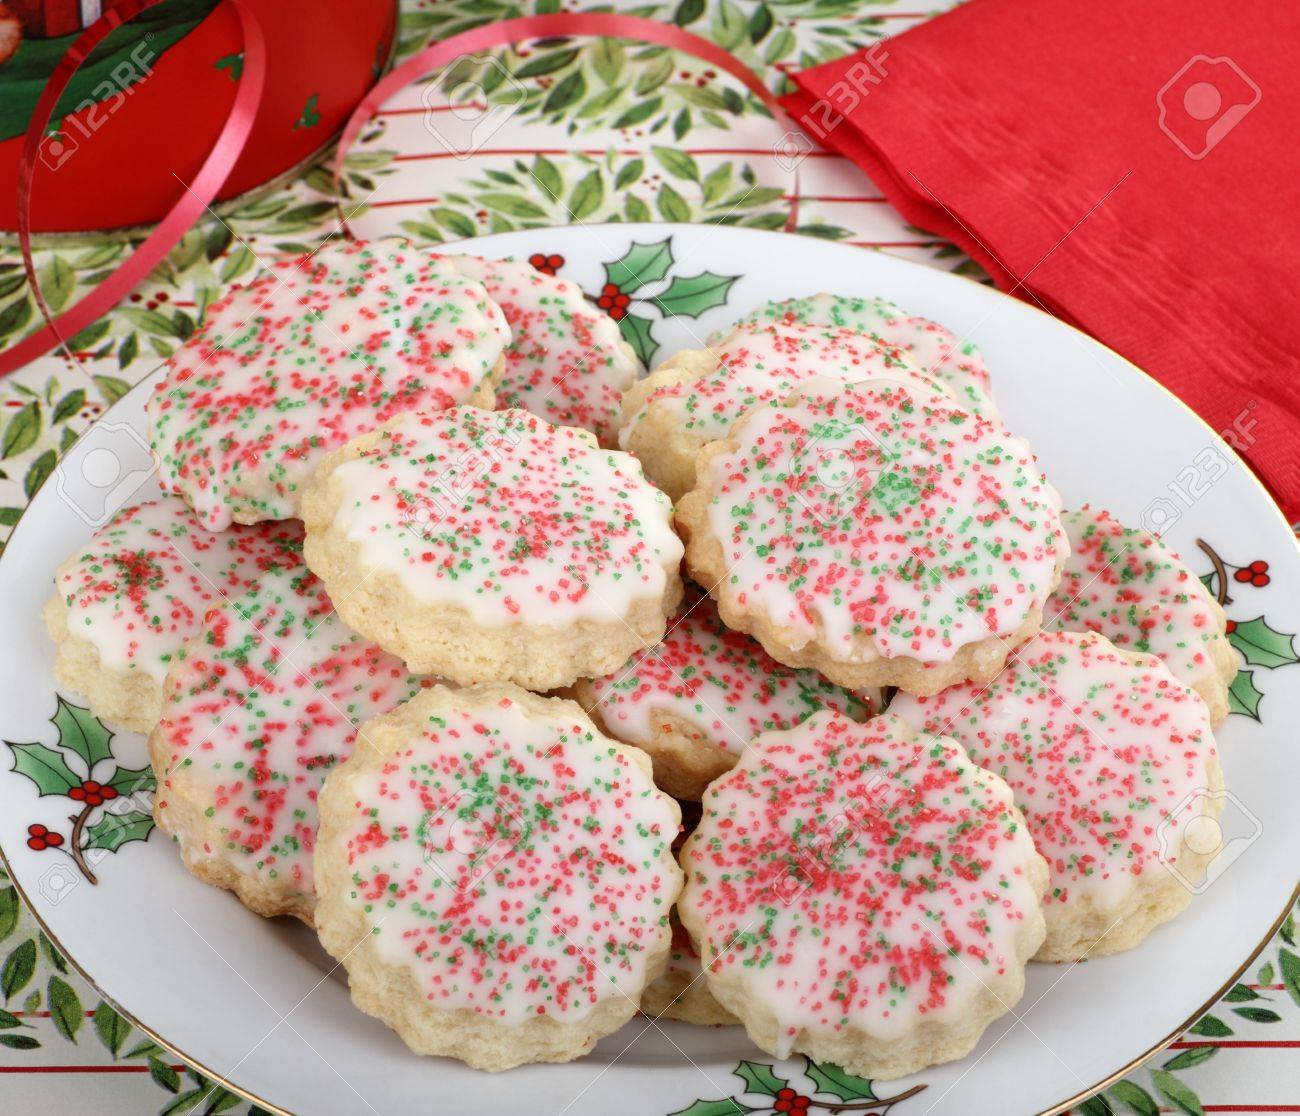 Plate Of Shortbread Christmas Cookies With Icing And Colored